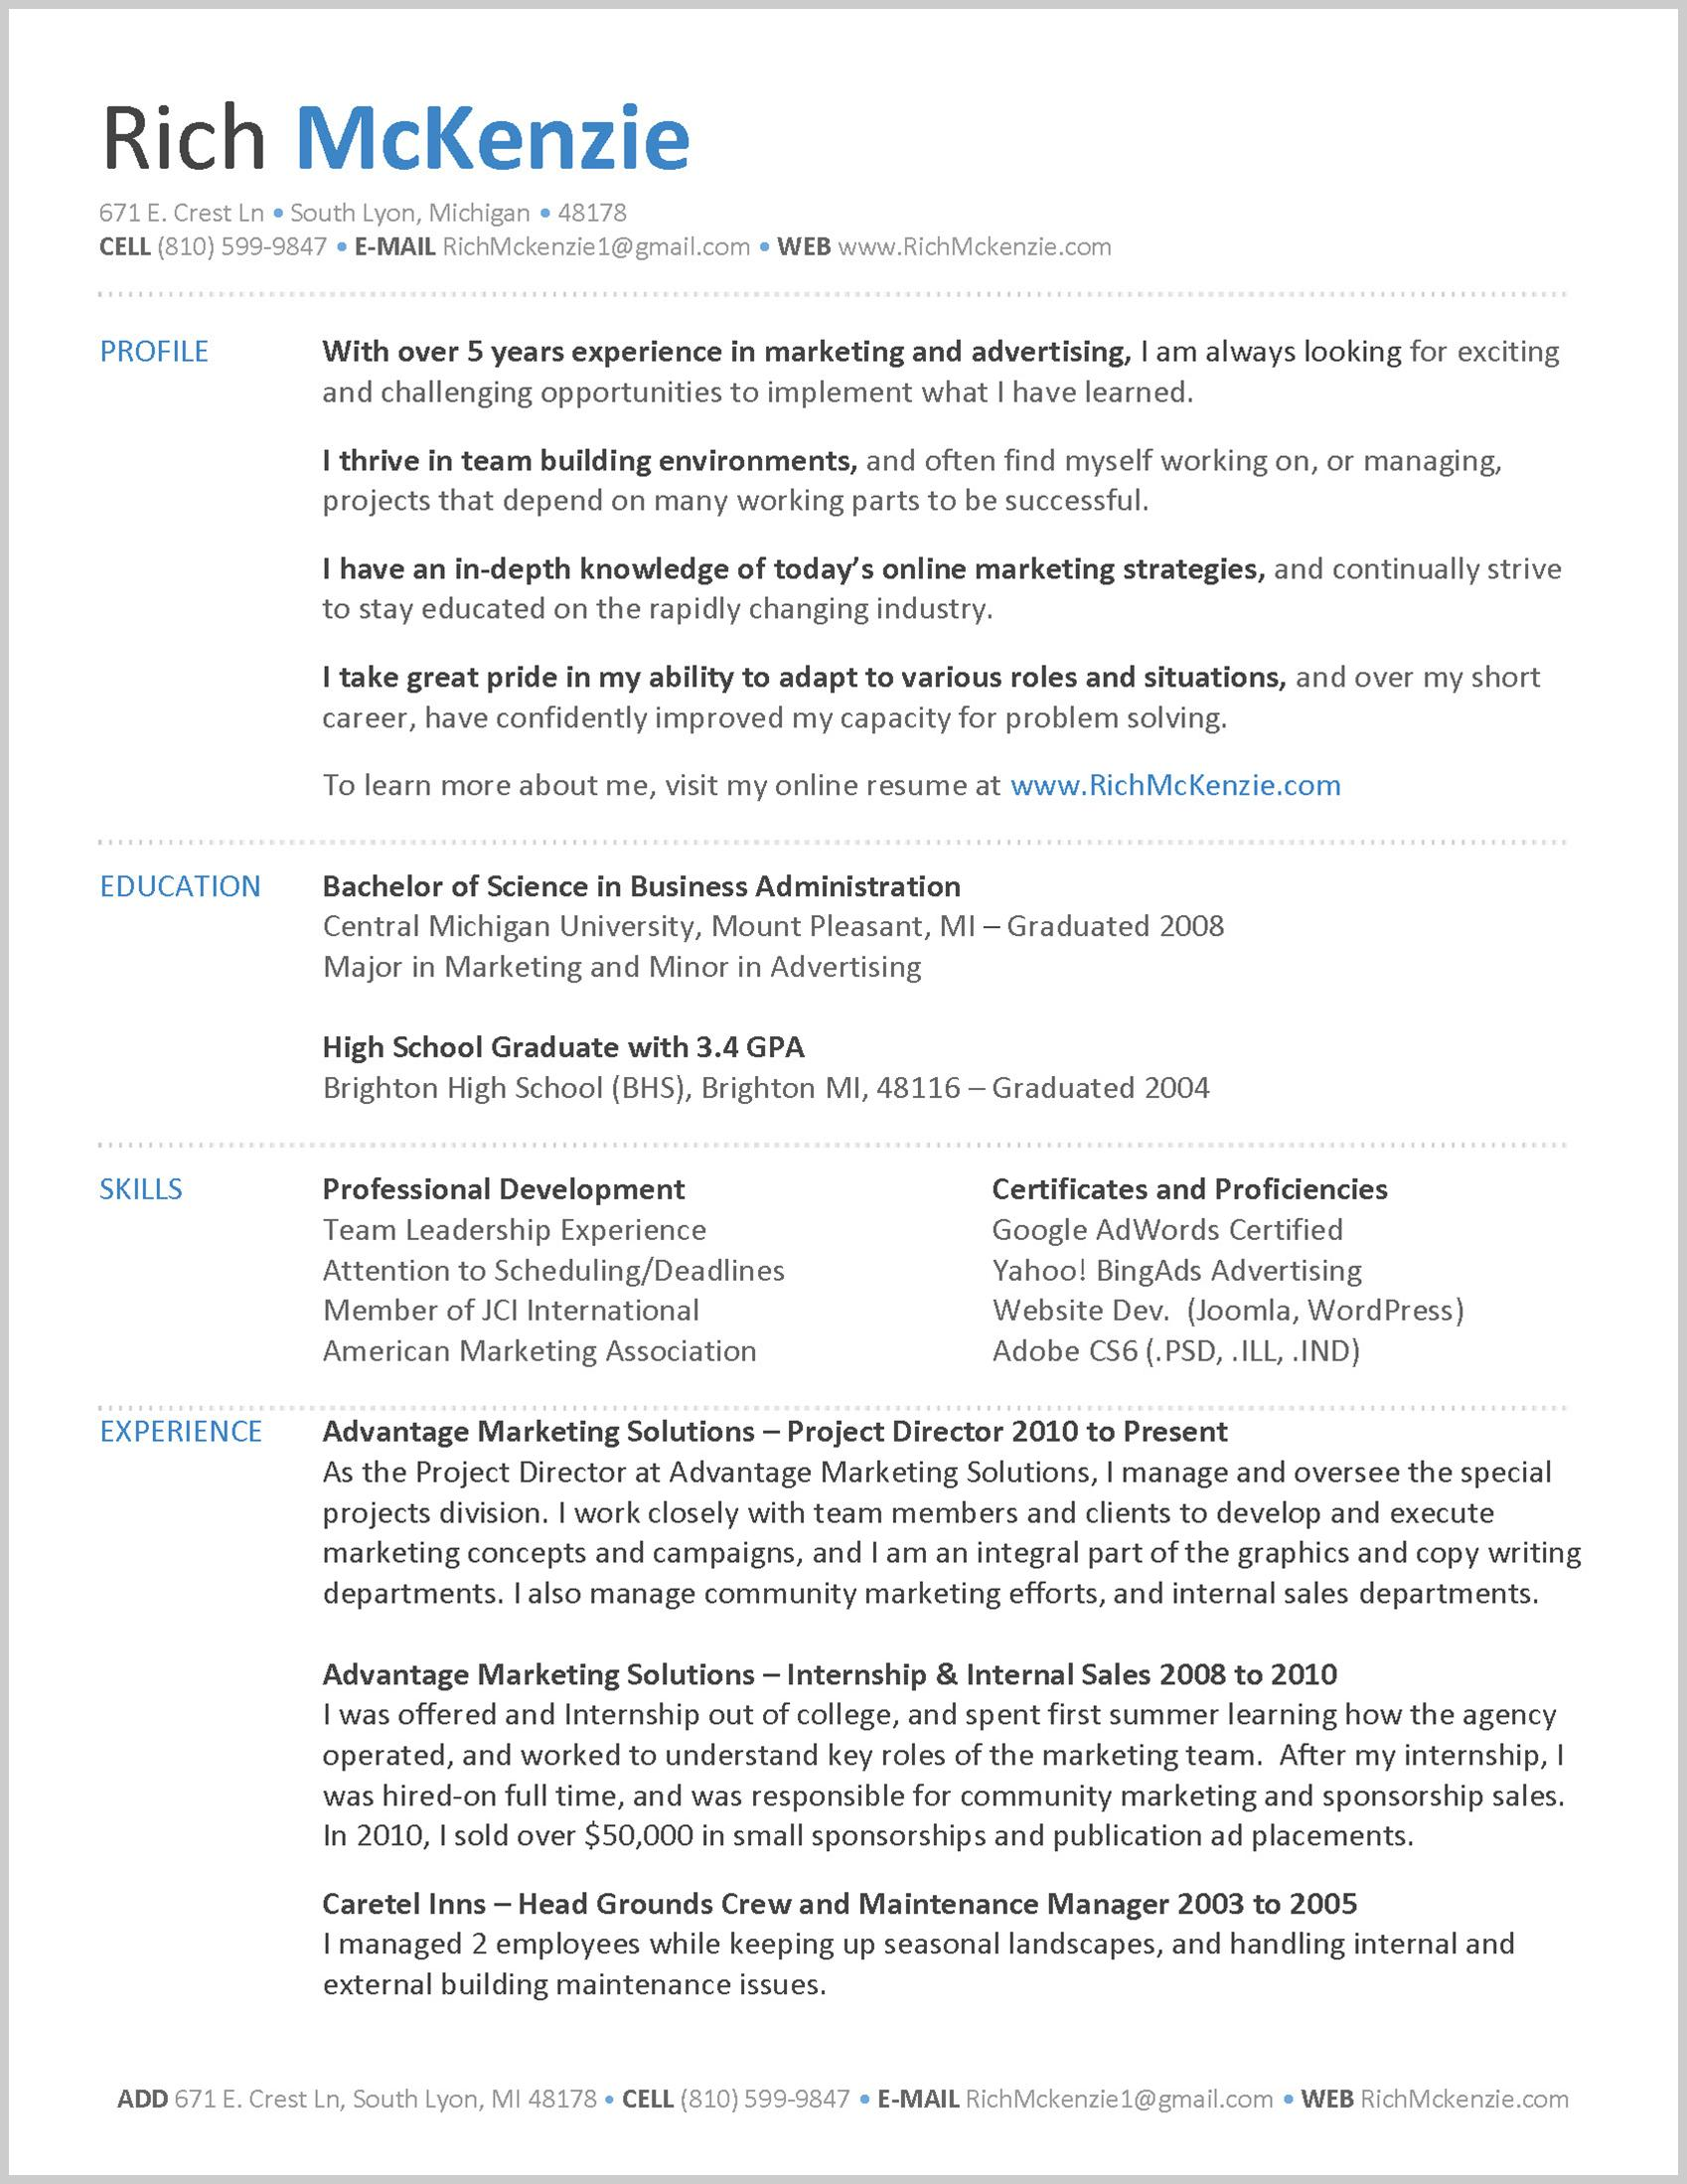 job cover letter help resume maker create professional resumes professional job cover letter help resume maker create professional resumes professional